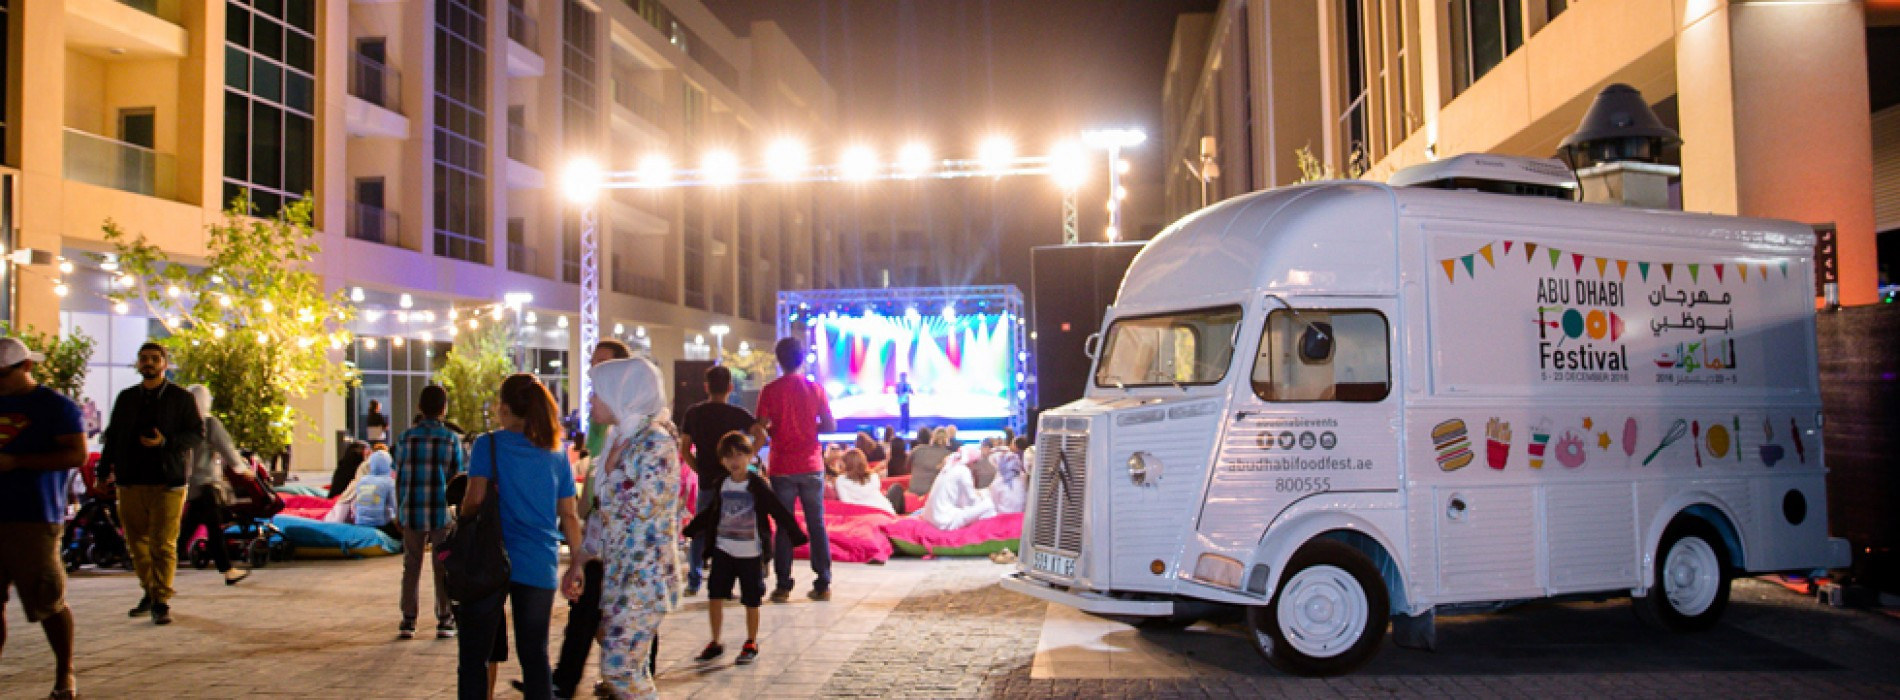 Abu Dhabi Food Festival 2016 inspired over 29,000 culinary enthusiasts across the capital